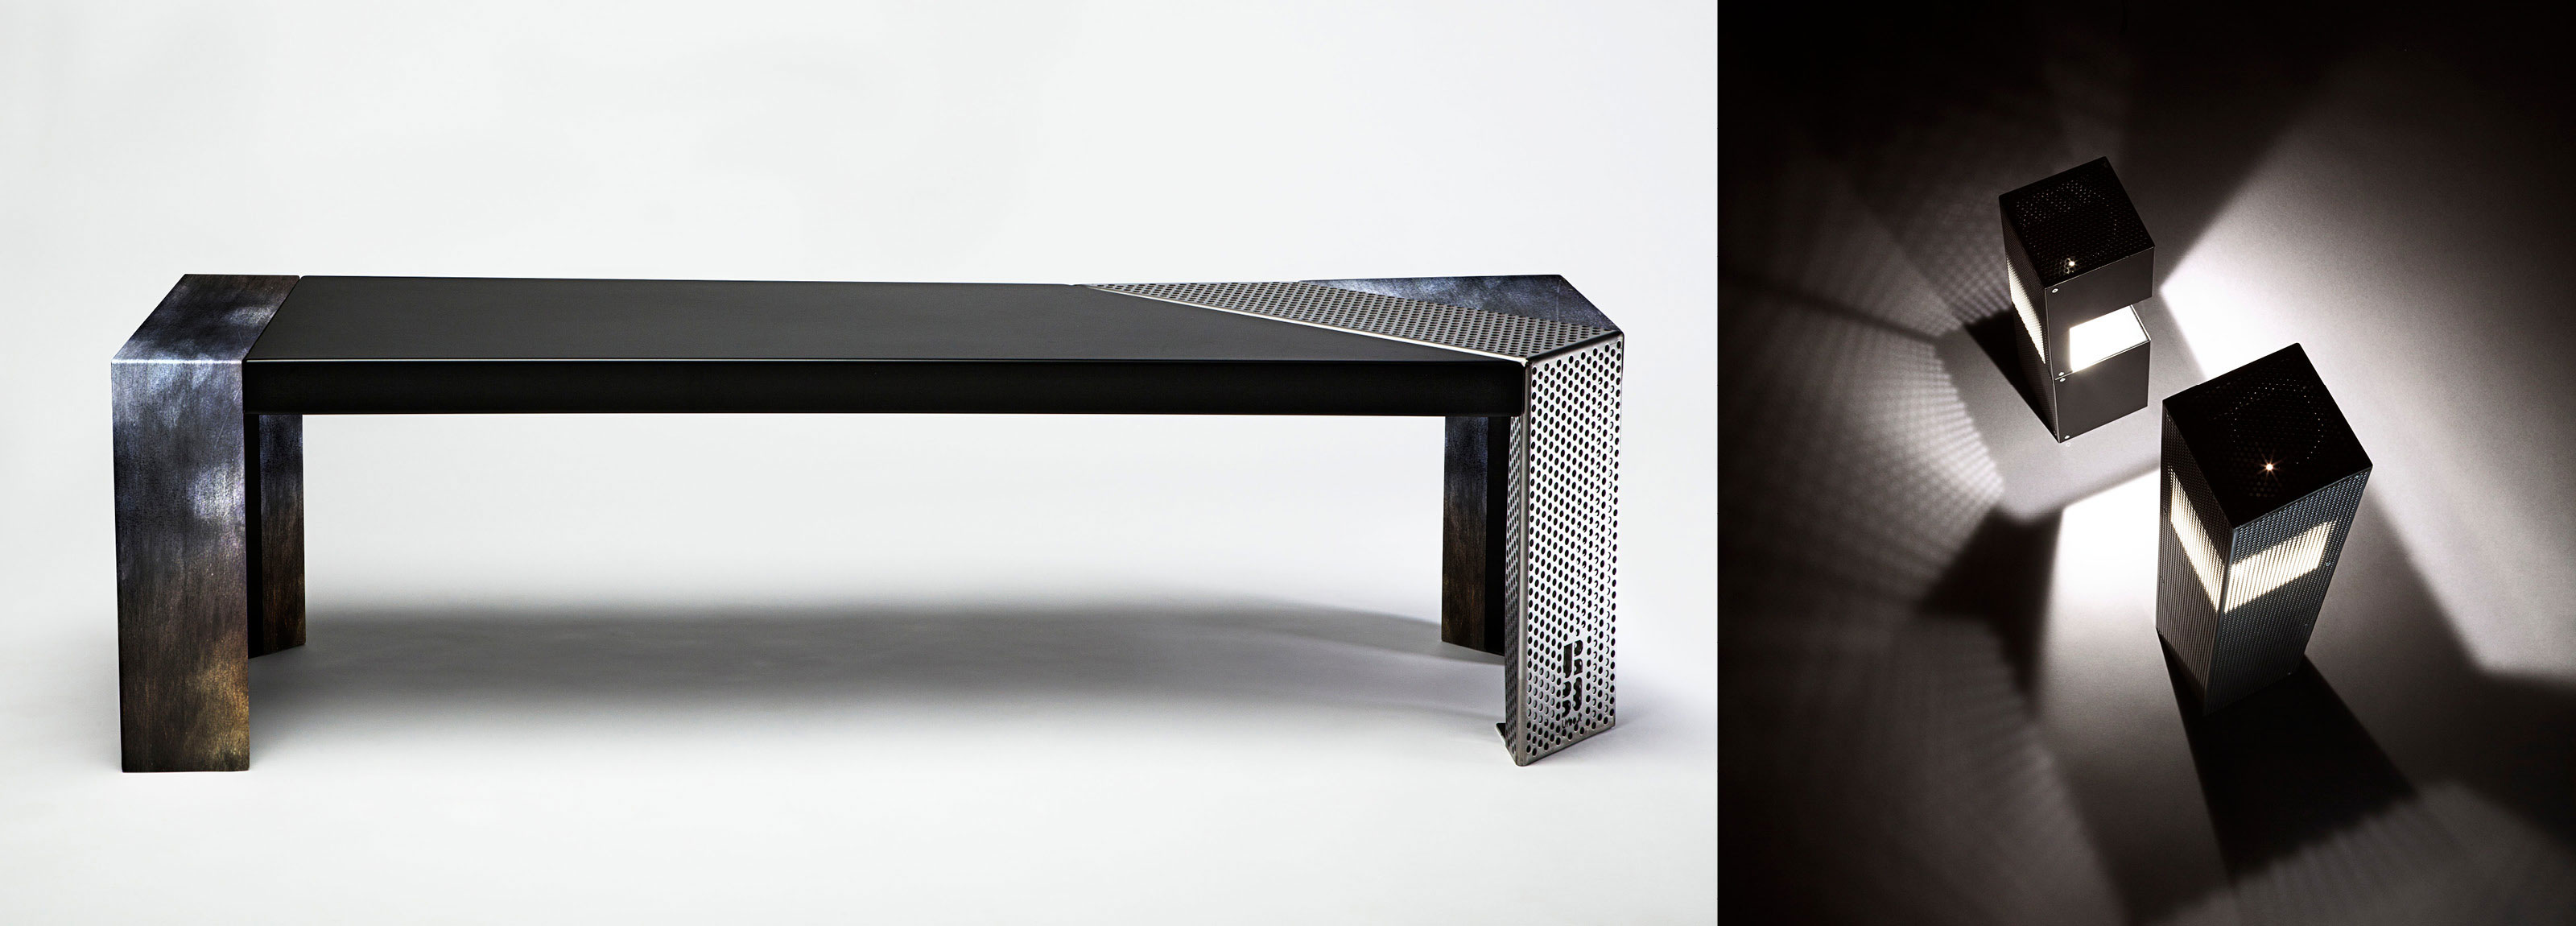 Innovative product design signed by Hangar Design Group for Urbo a urban furniture company.